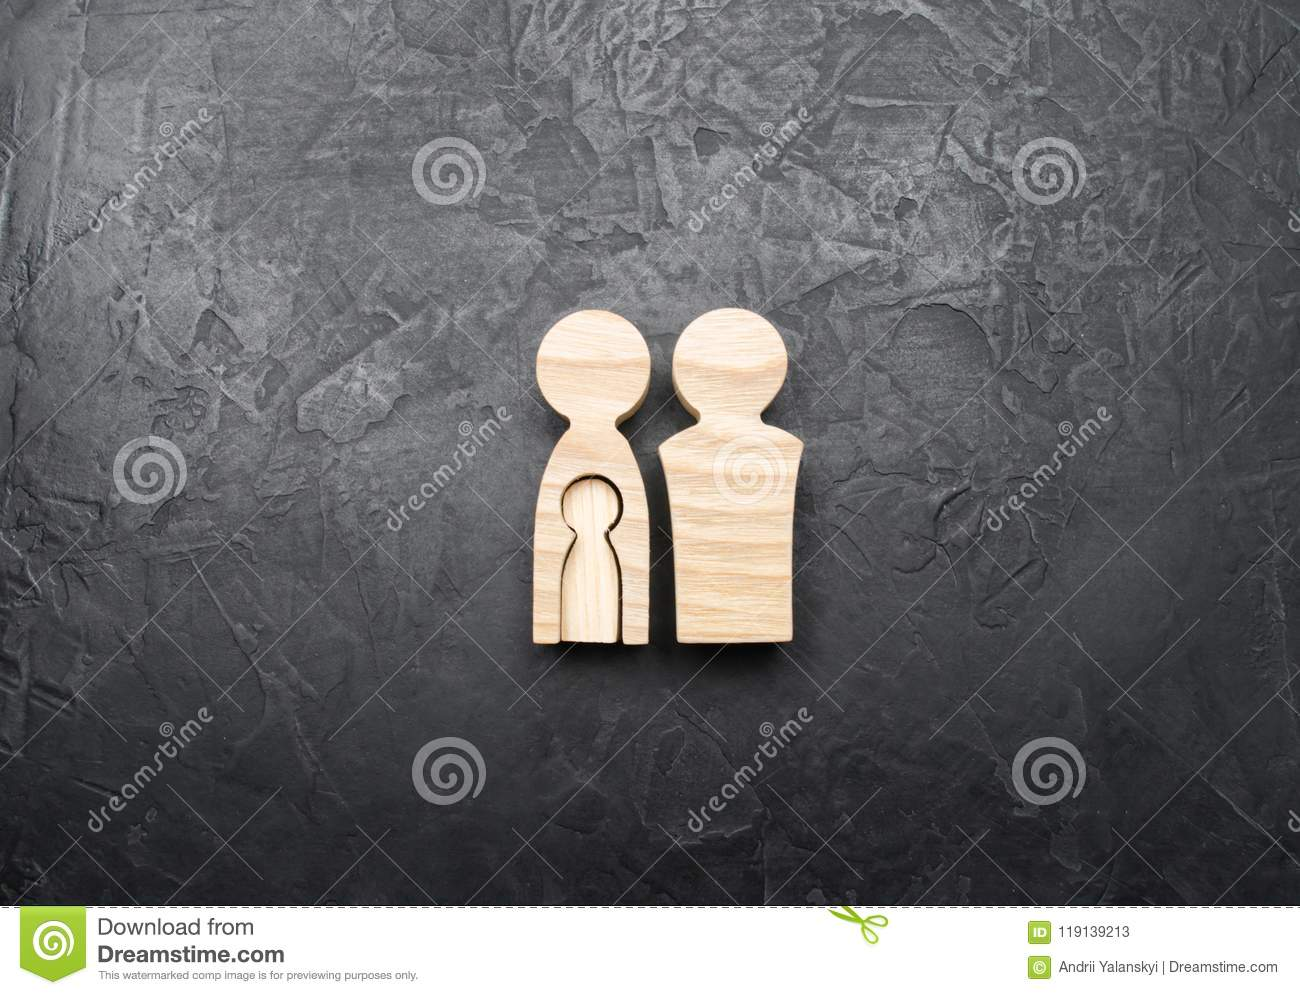 Wooden Figurines Of Parents With The Shape Of A Child Inside The